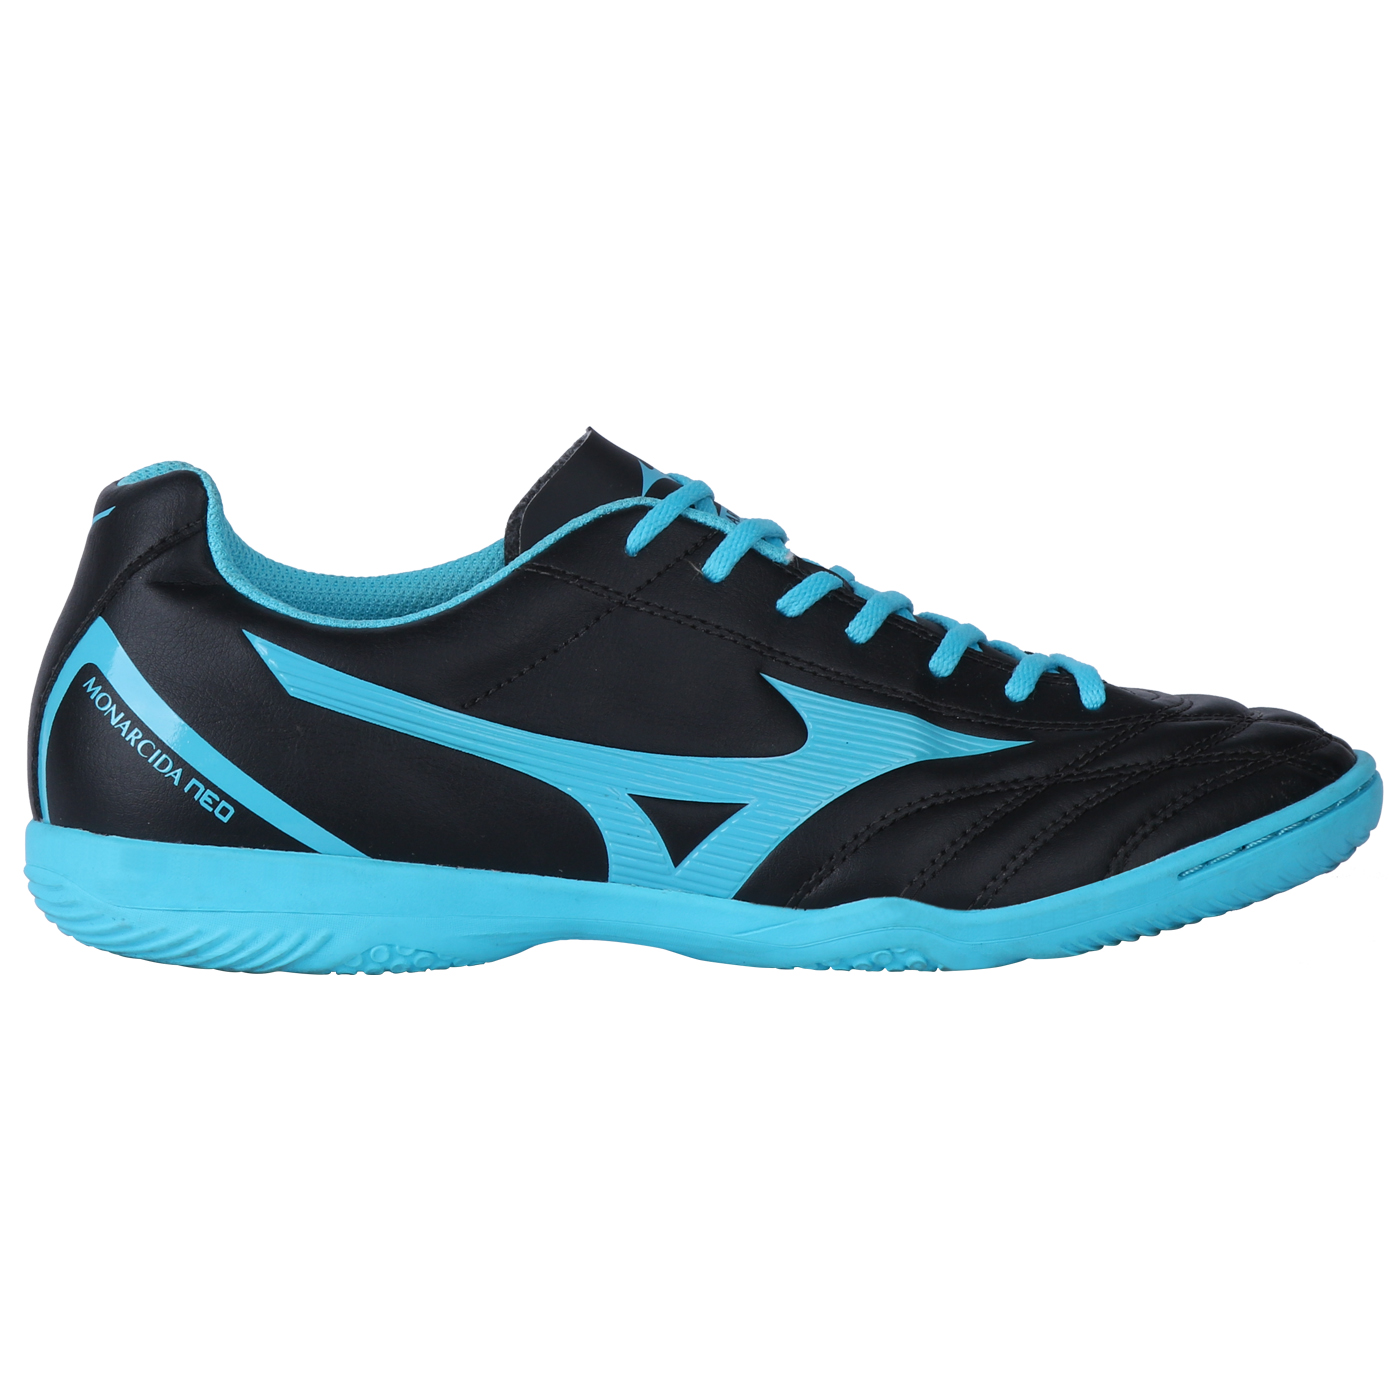 MONARCIDA NEO SELECT IN-BLACK/BLUE ATOLL